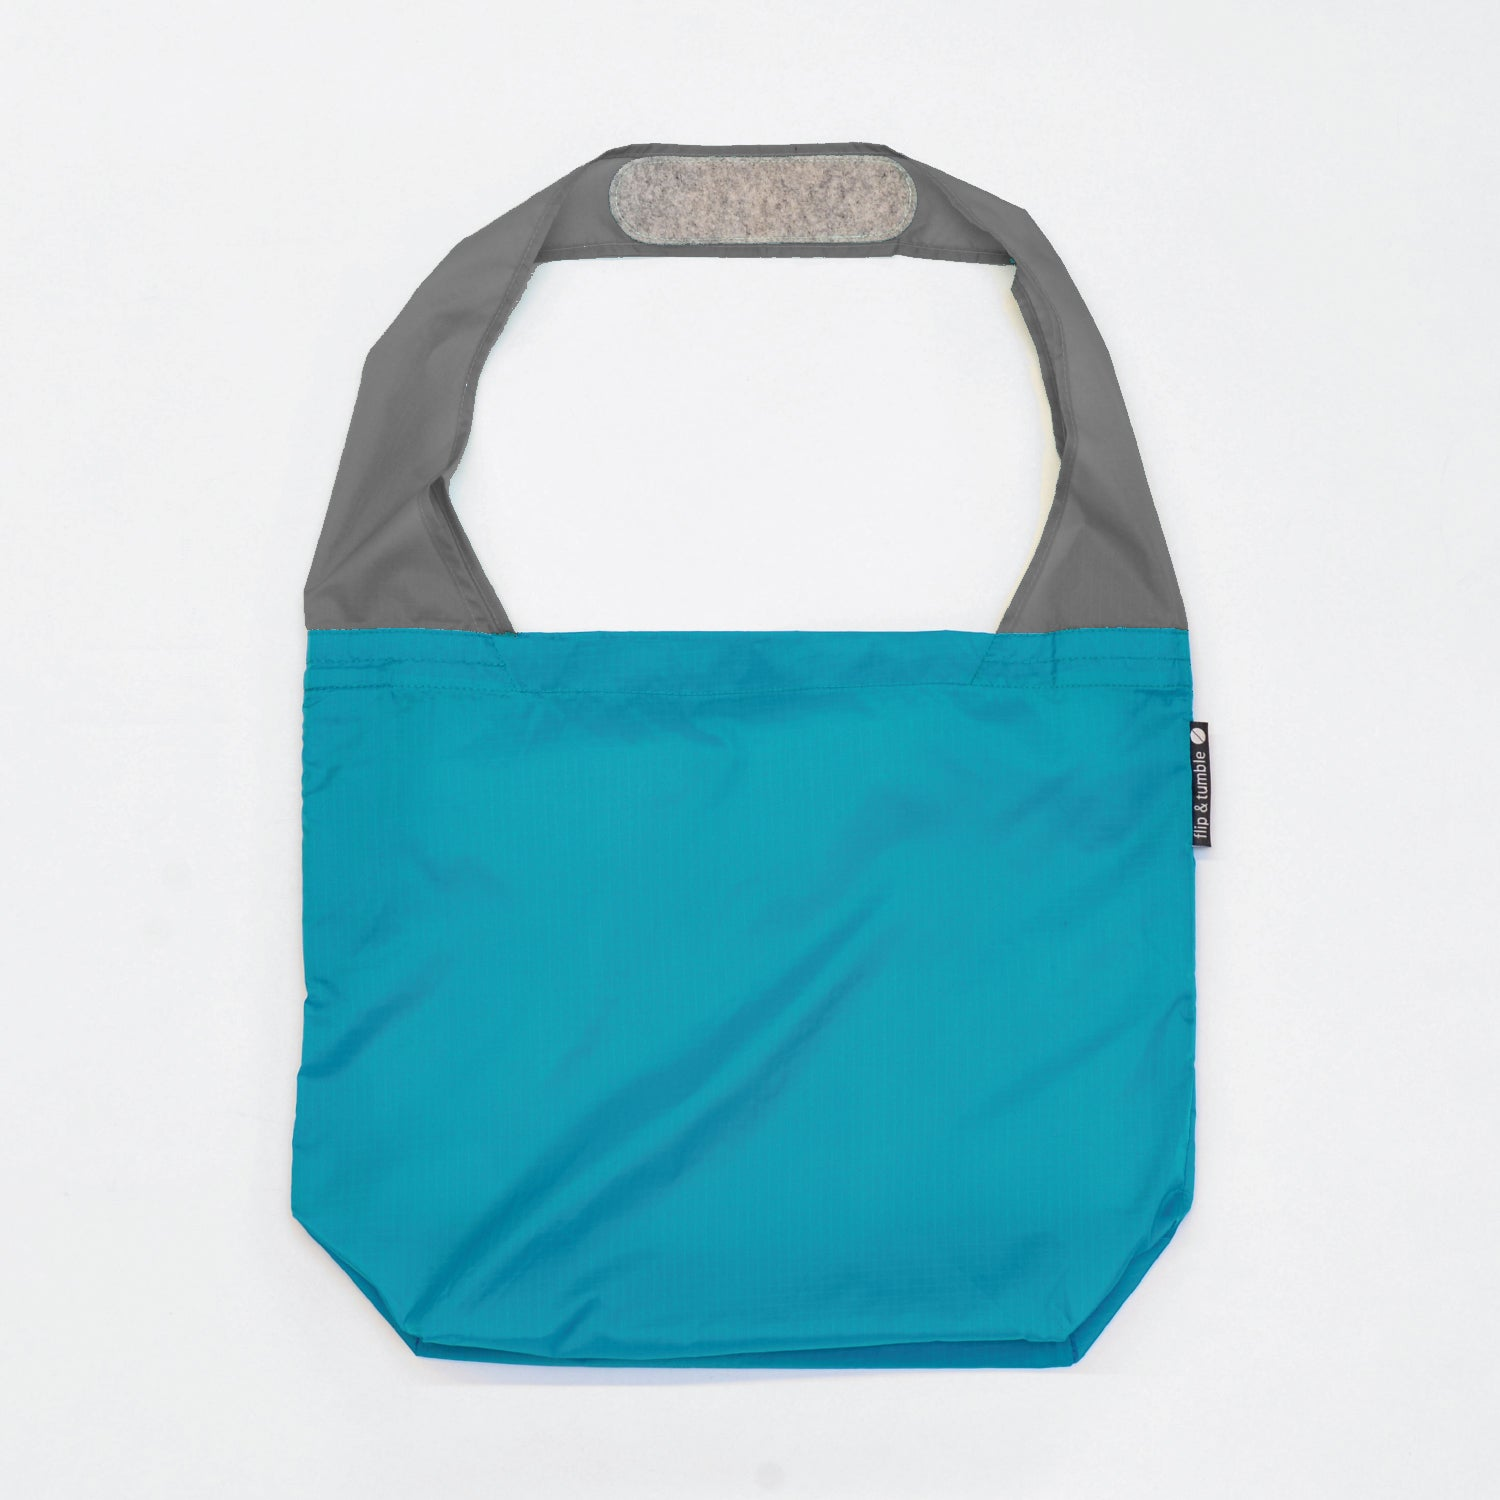 marine blue reusable grocery shopping bag